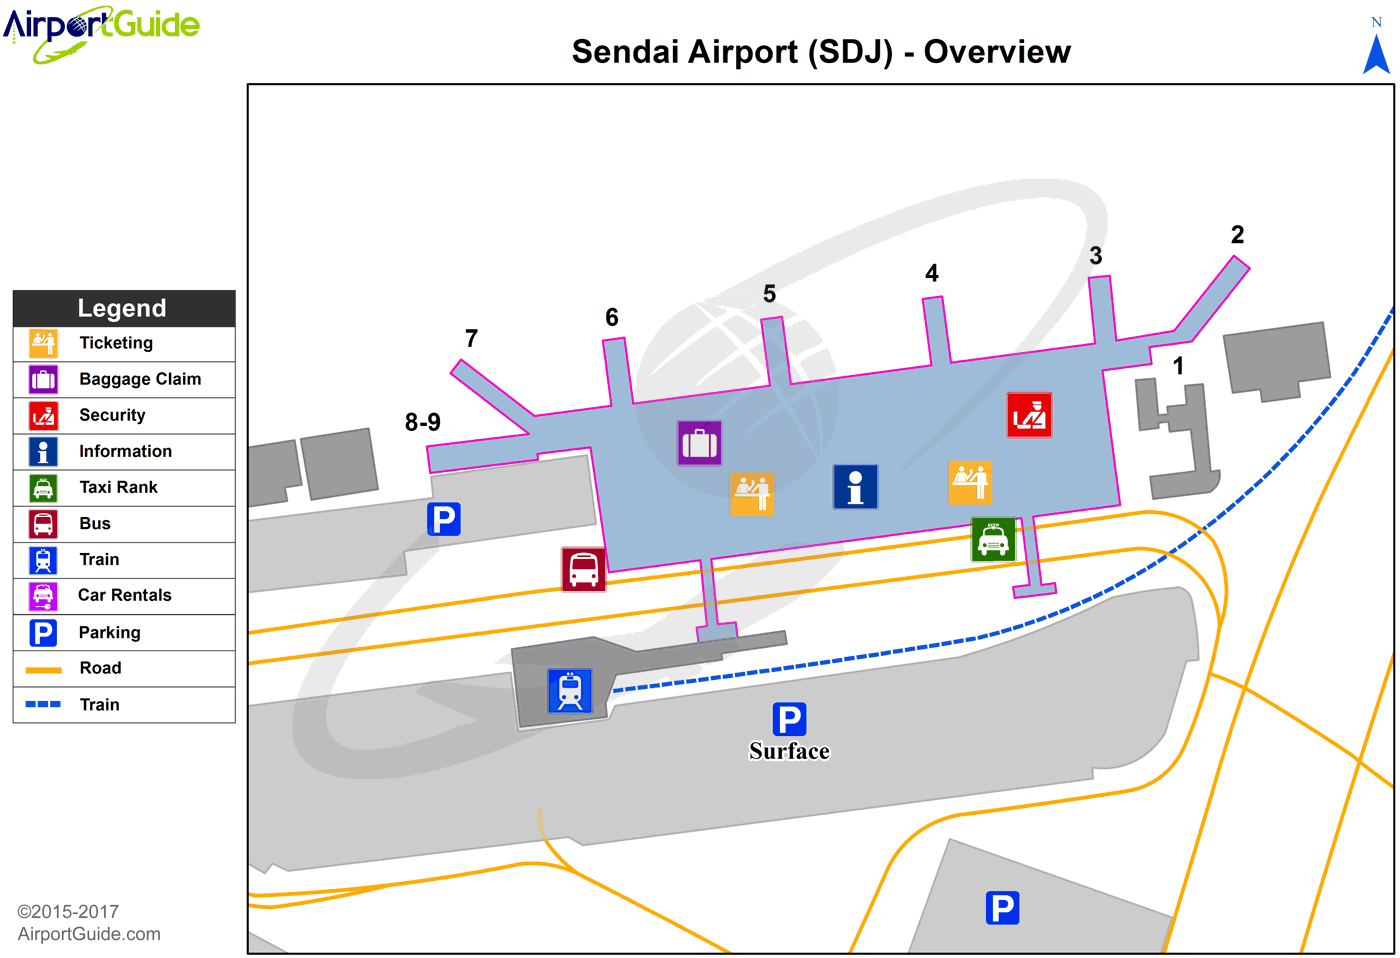 Sendai - Sendai (SDJ) Airport Terminal Map - Overview